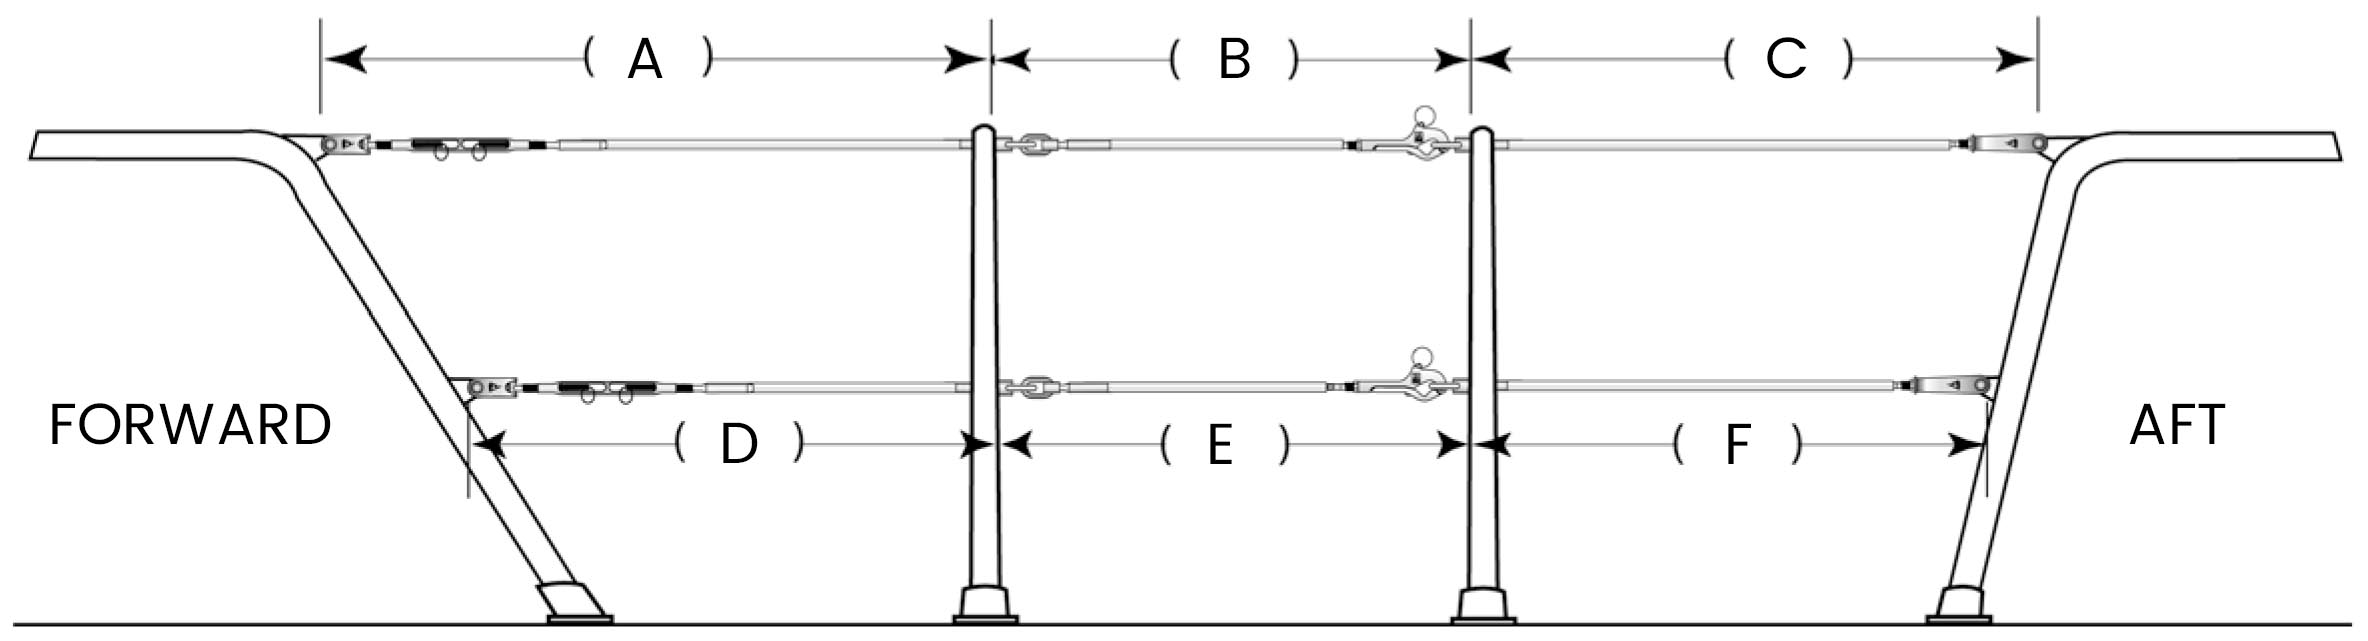 Sailboat Measurement Form - Midship Gate